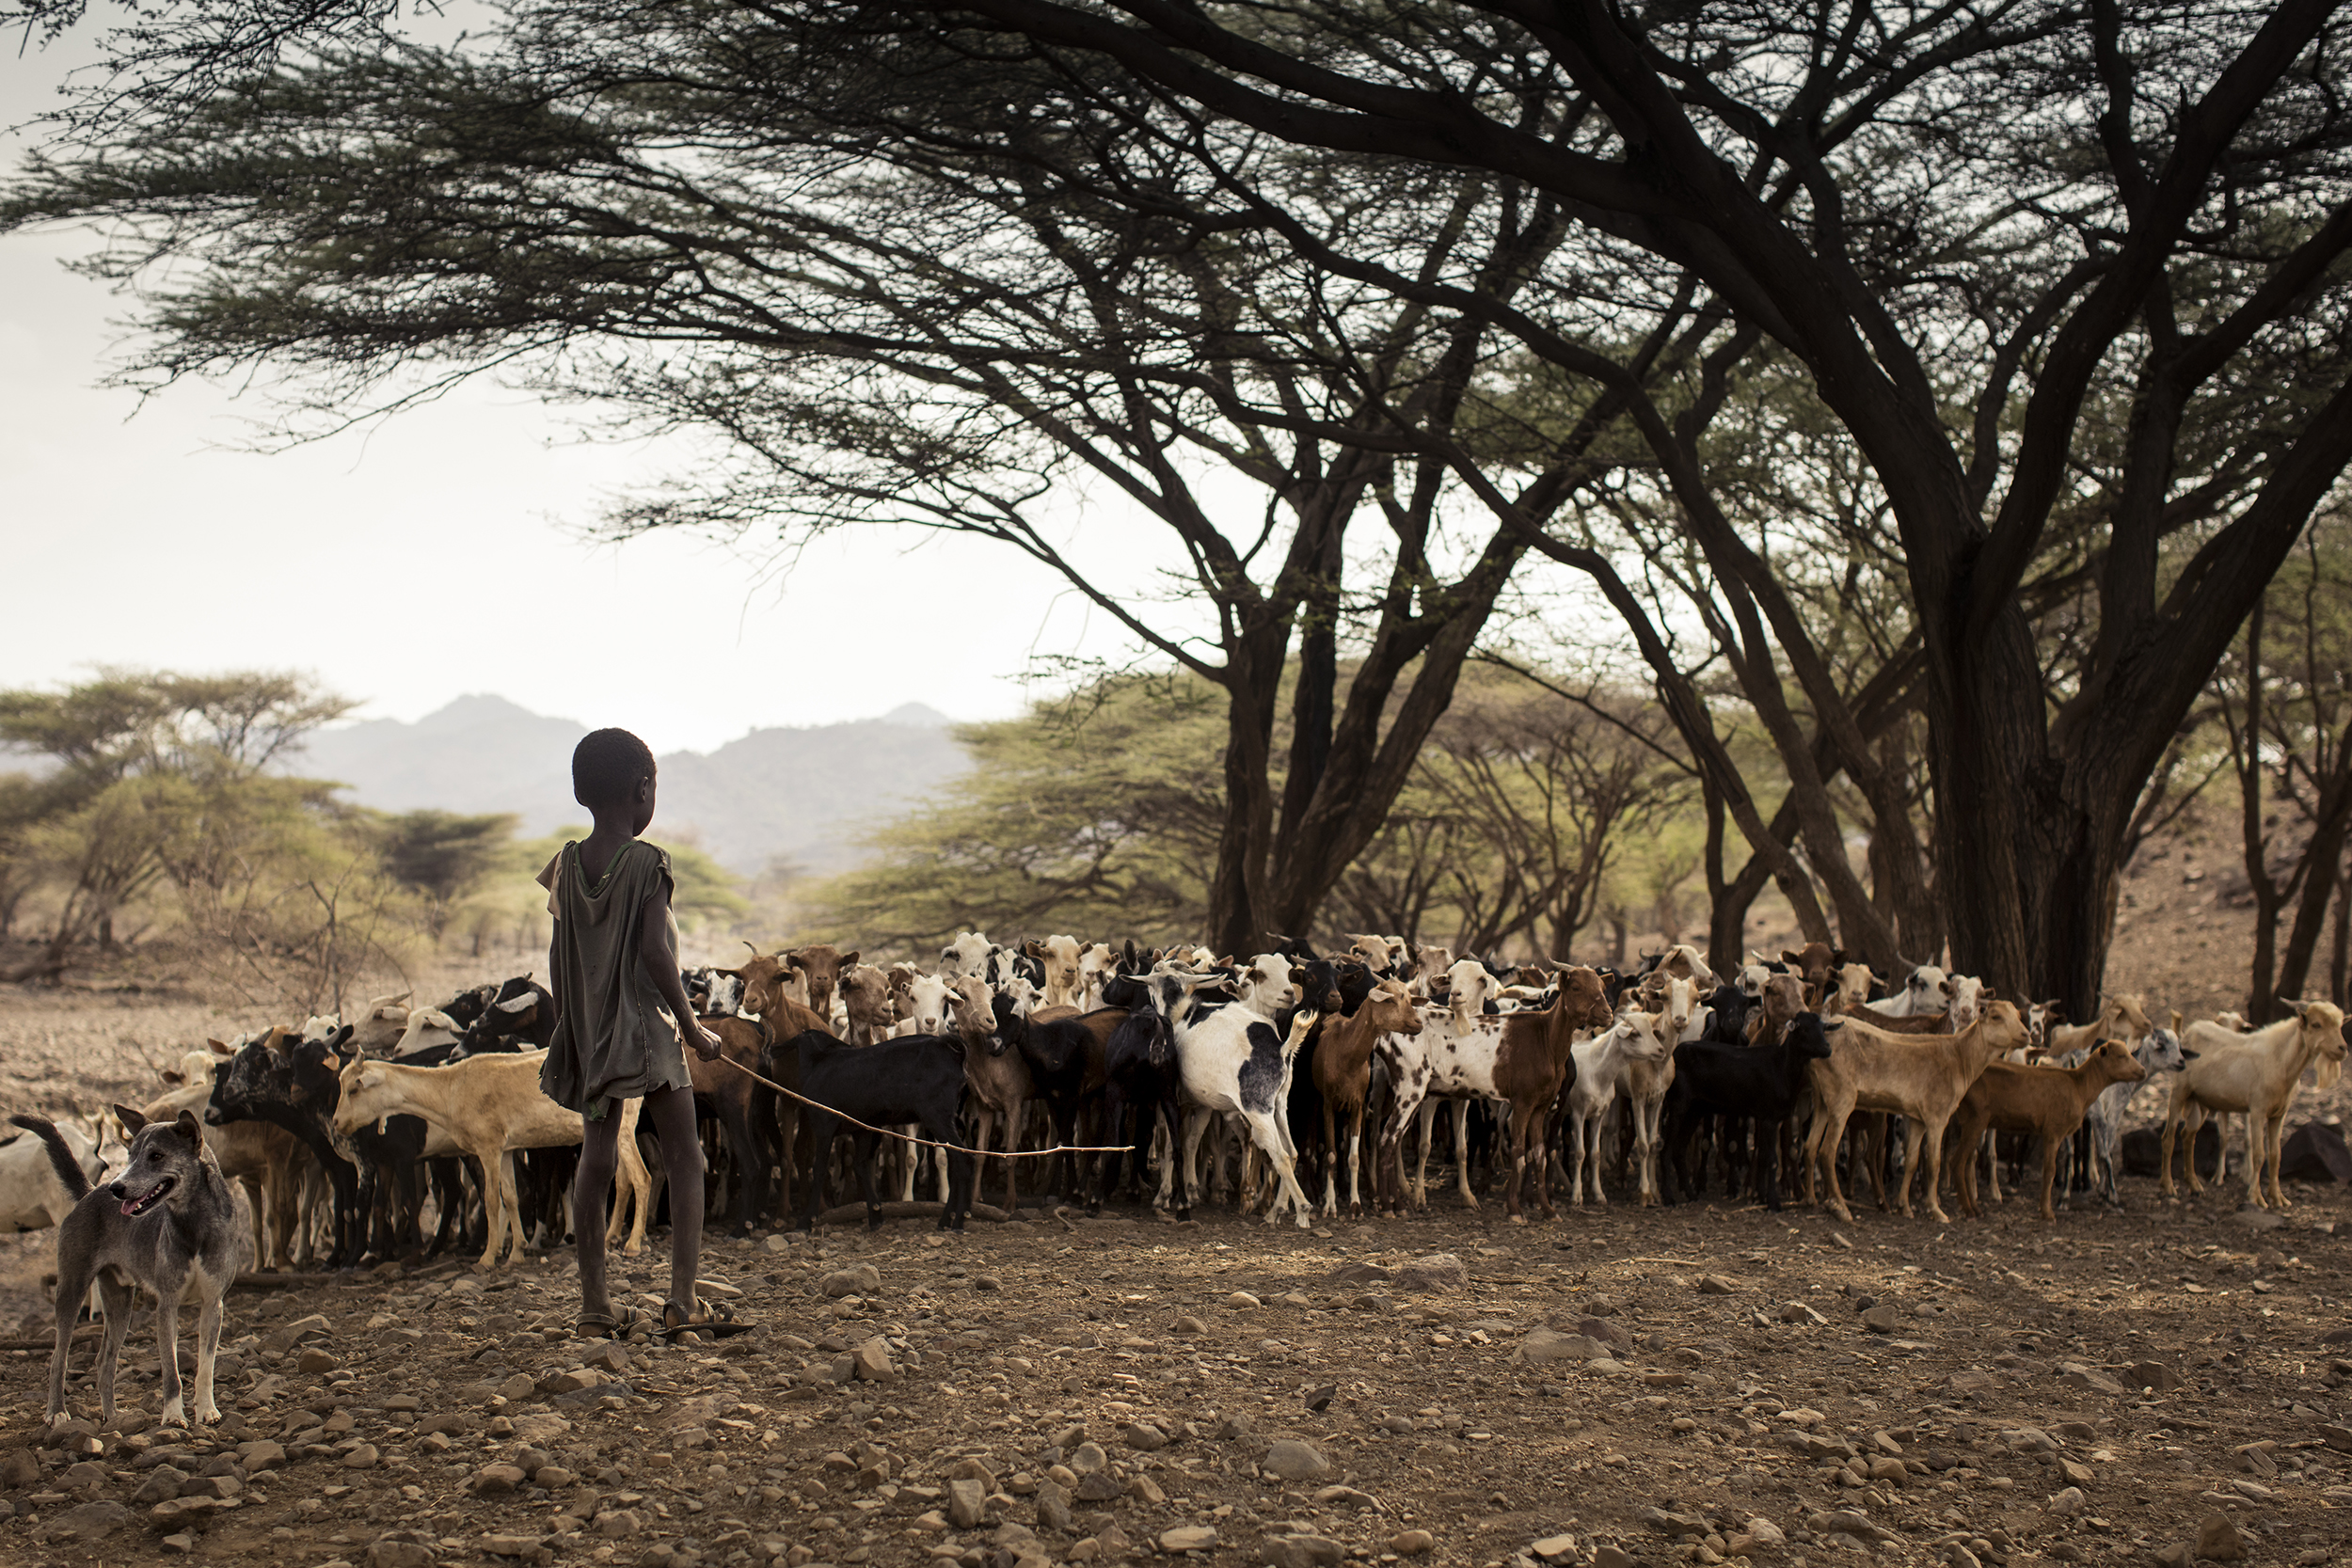 In Turkana North, the animals that the people of the region rely upon are often the first to suffer and die when a drought hits.  [Photo courtesy  GI-INC ]